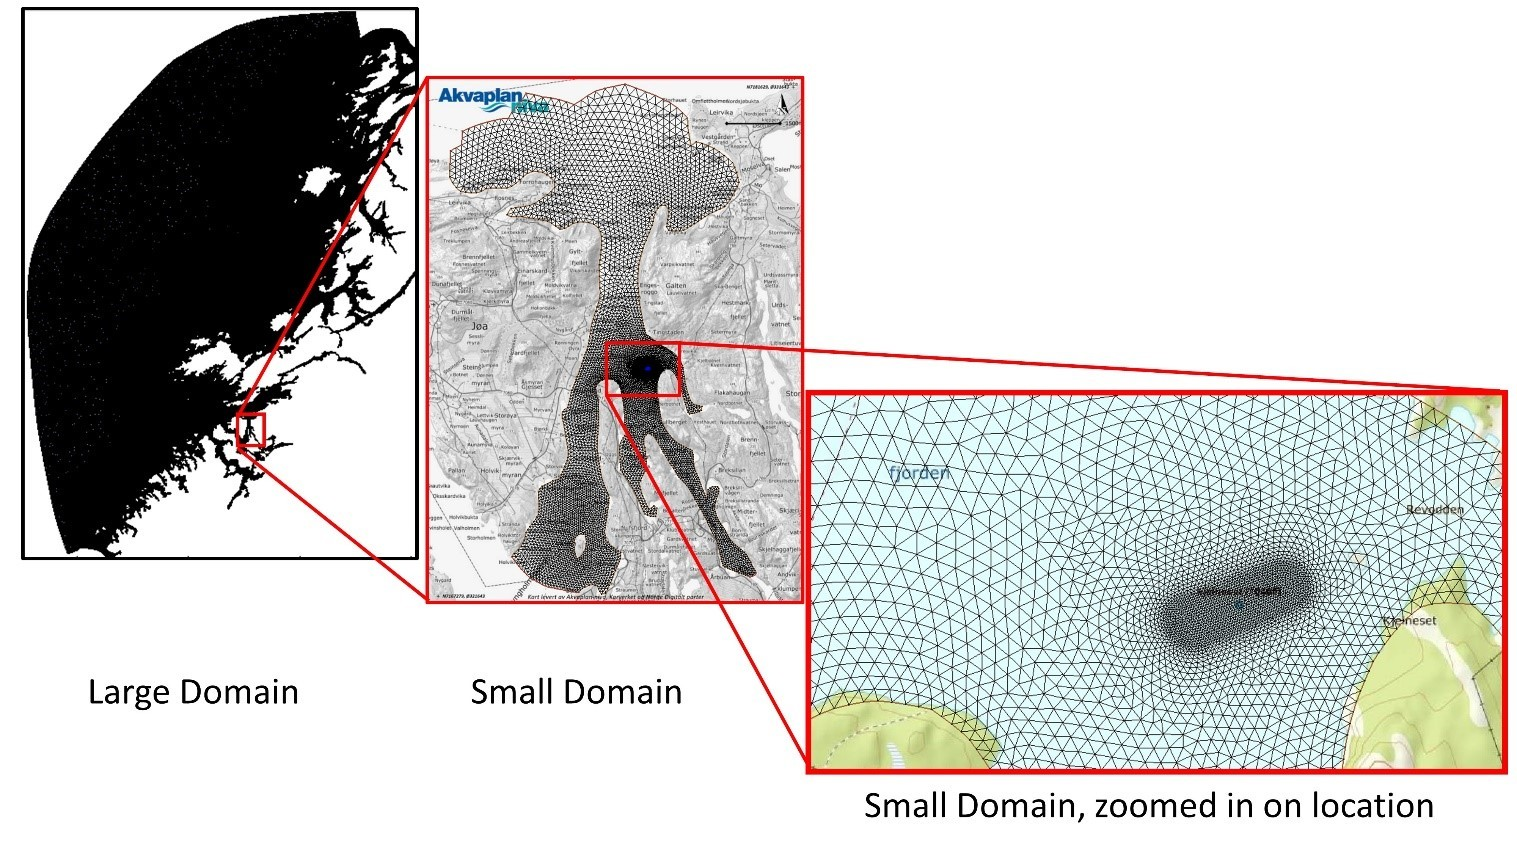 Figure 5: Model domains for Trøndelag (left: large domain), zooming in on the subdomain (middle) and on the immediate vicinity of the fish farm (right). The Large domain (left) covers most of Trøndelag and some of Nordland while the small domain (middle) is nested into the larger and covers the area around the fish farms at Kjelneset. The large domain was run to assure a realistic circulation and has a resolution of about 800 m at the outer boundary down to approximately 70 m. The small domain has higher resolution, down to about 8m around the fish farms (right) in order to get a realistic spreading and deposition close to the fish cages.